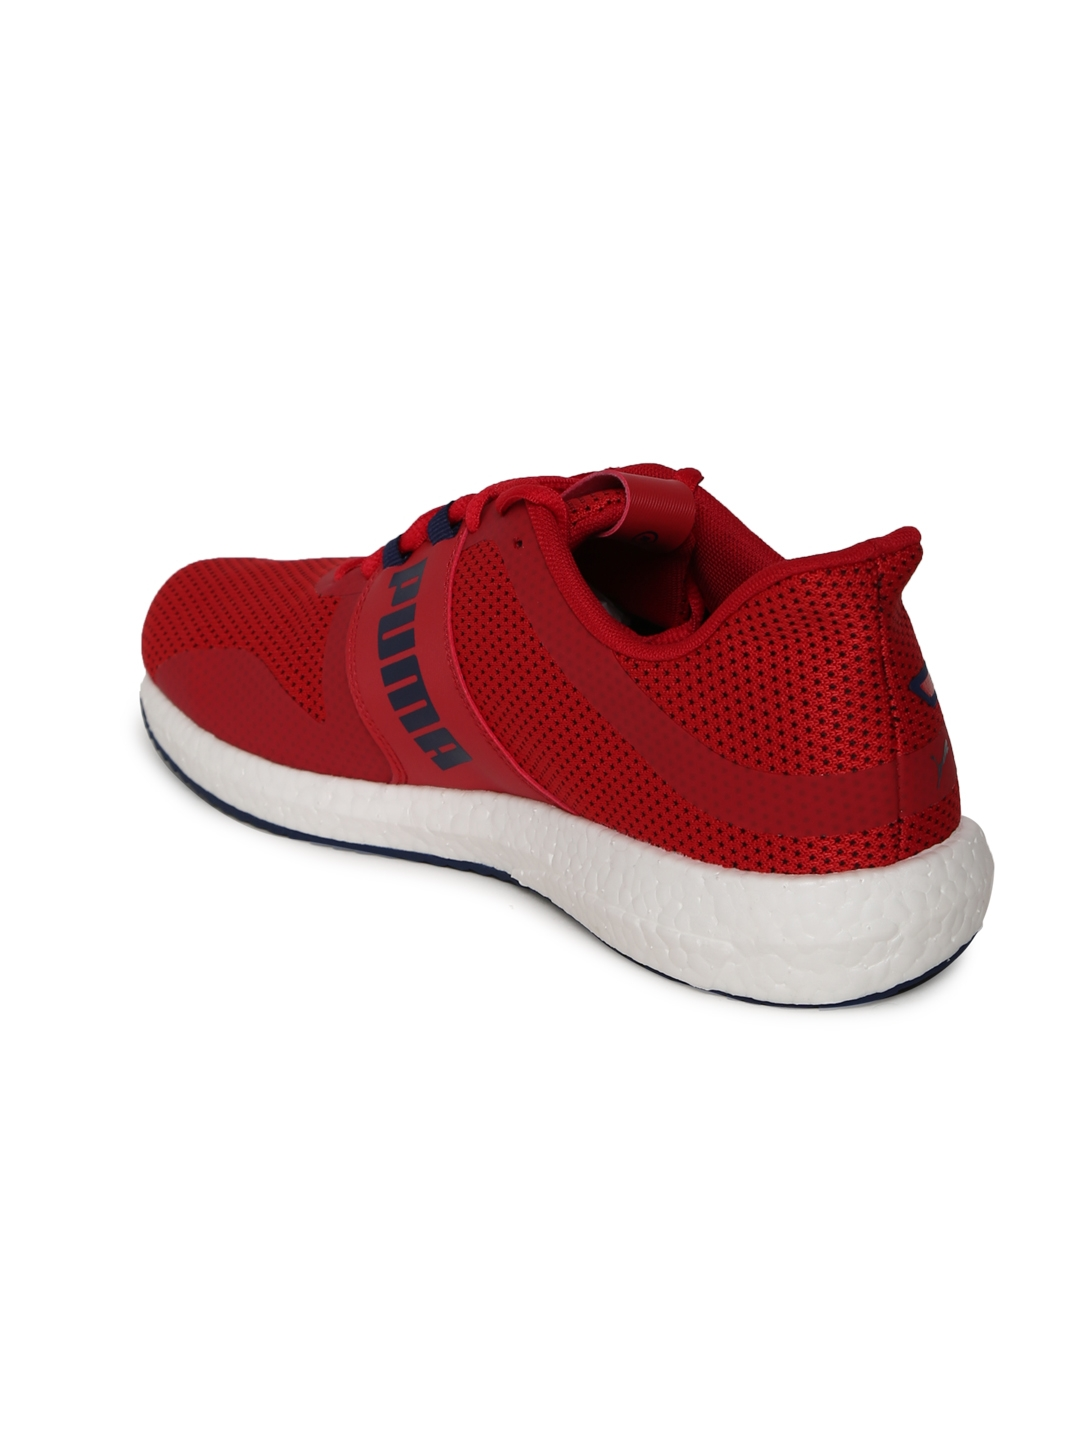 c04840968854 Buy Puma Men Red Mega NRGY Turbo Running Shoes - Sports Shoes for ...